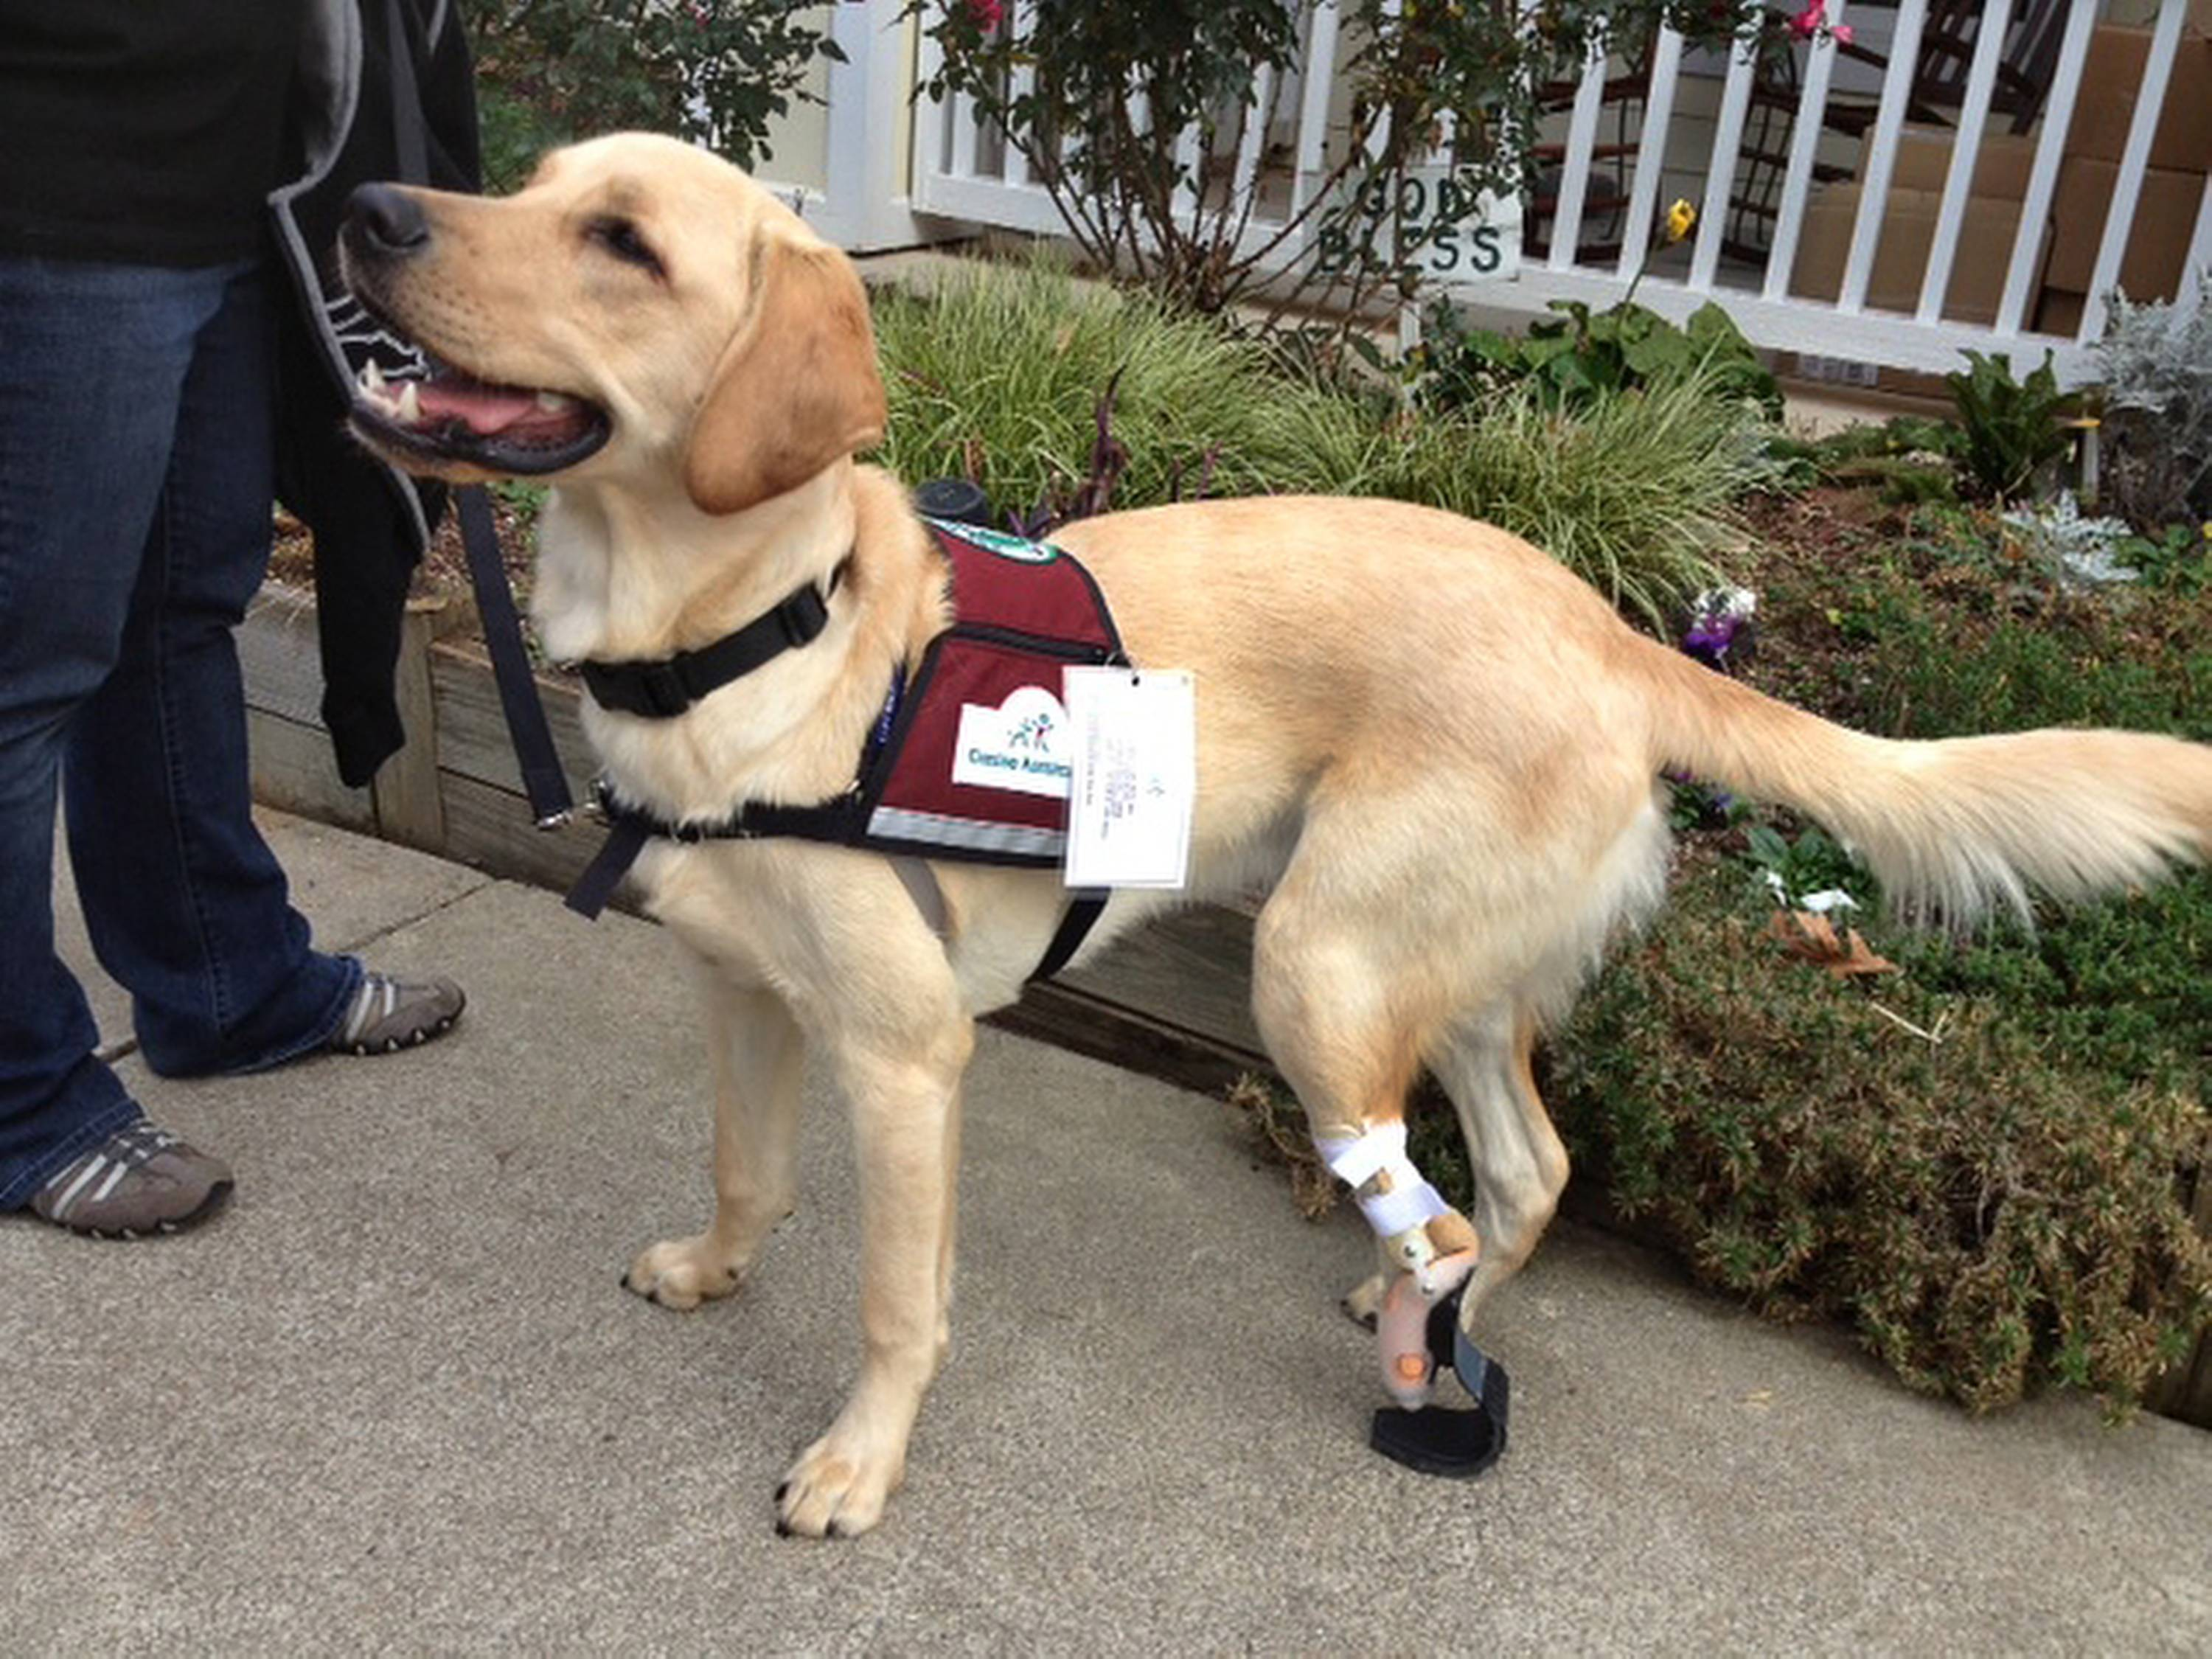 "Pirelli, a Labrador-golden retriever mix, was born with his umbilical cord wrapped around his back left leg so he never grew a paw. Pirelli uses a prosthetic limb, and with it is a ""happy, expressive dog, able to run and play, retrieve things and eat his food,"" said Dudley Arnold, Pirelli's handler."